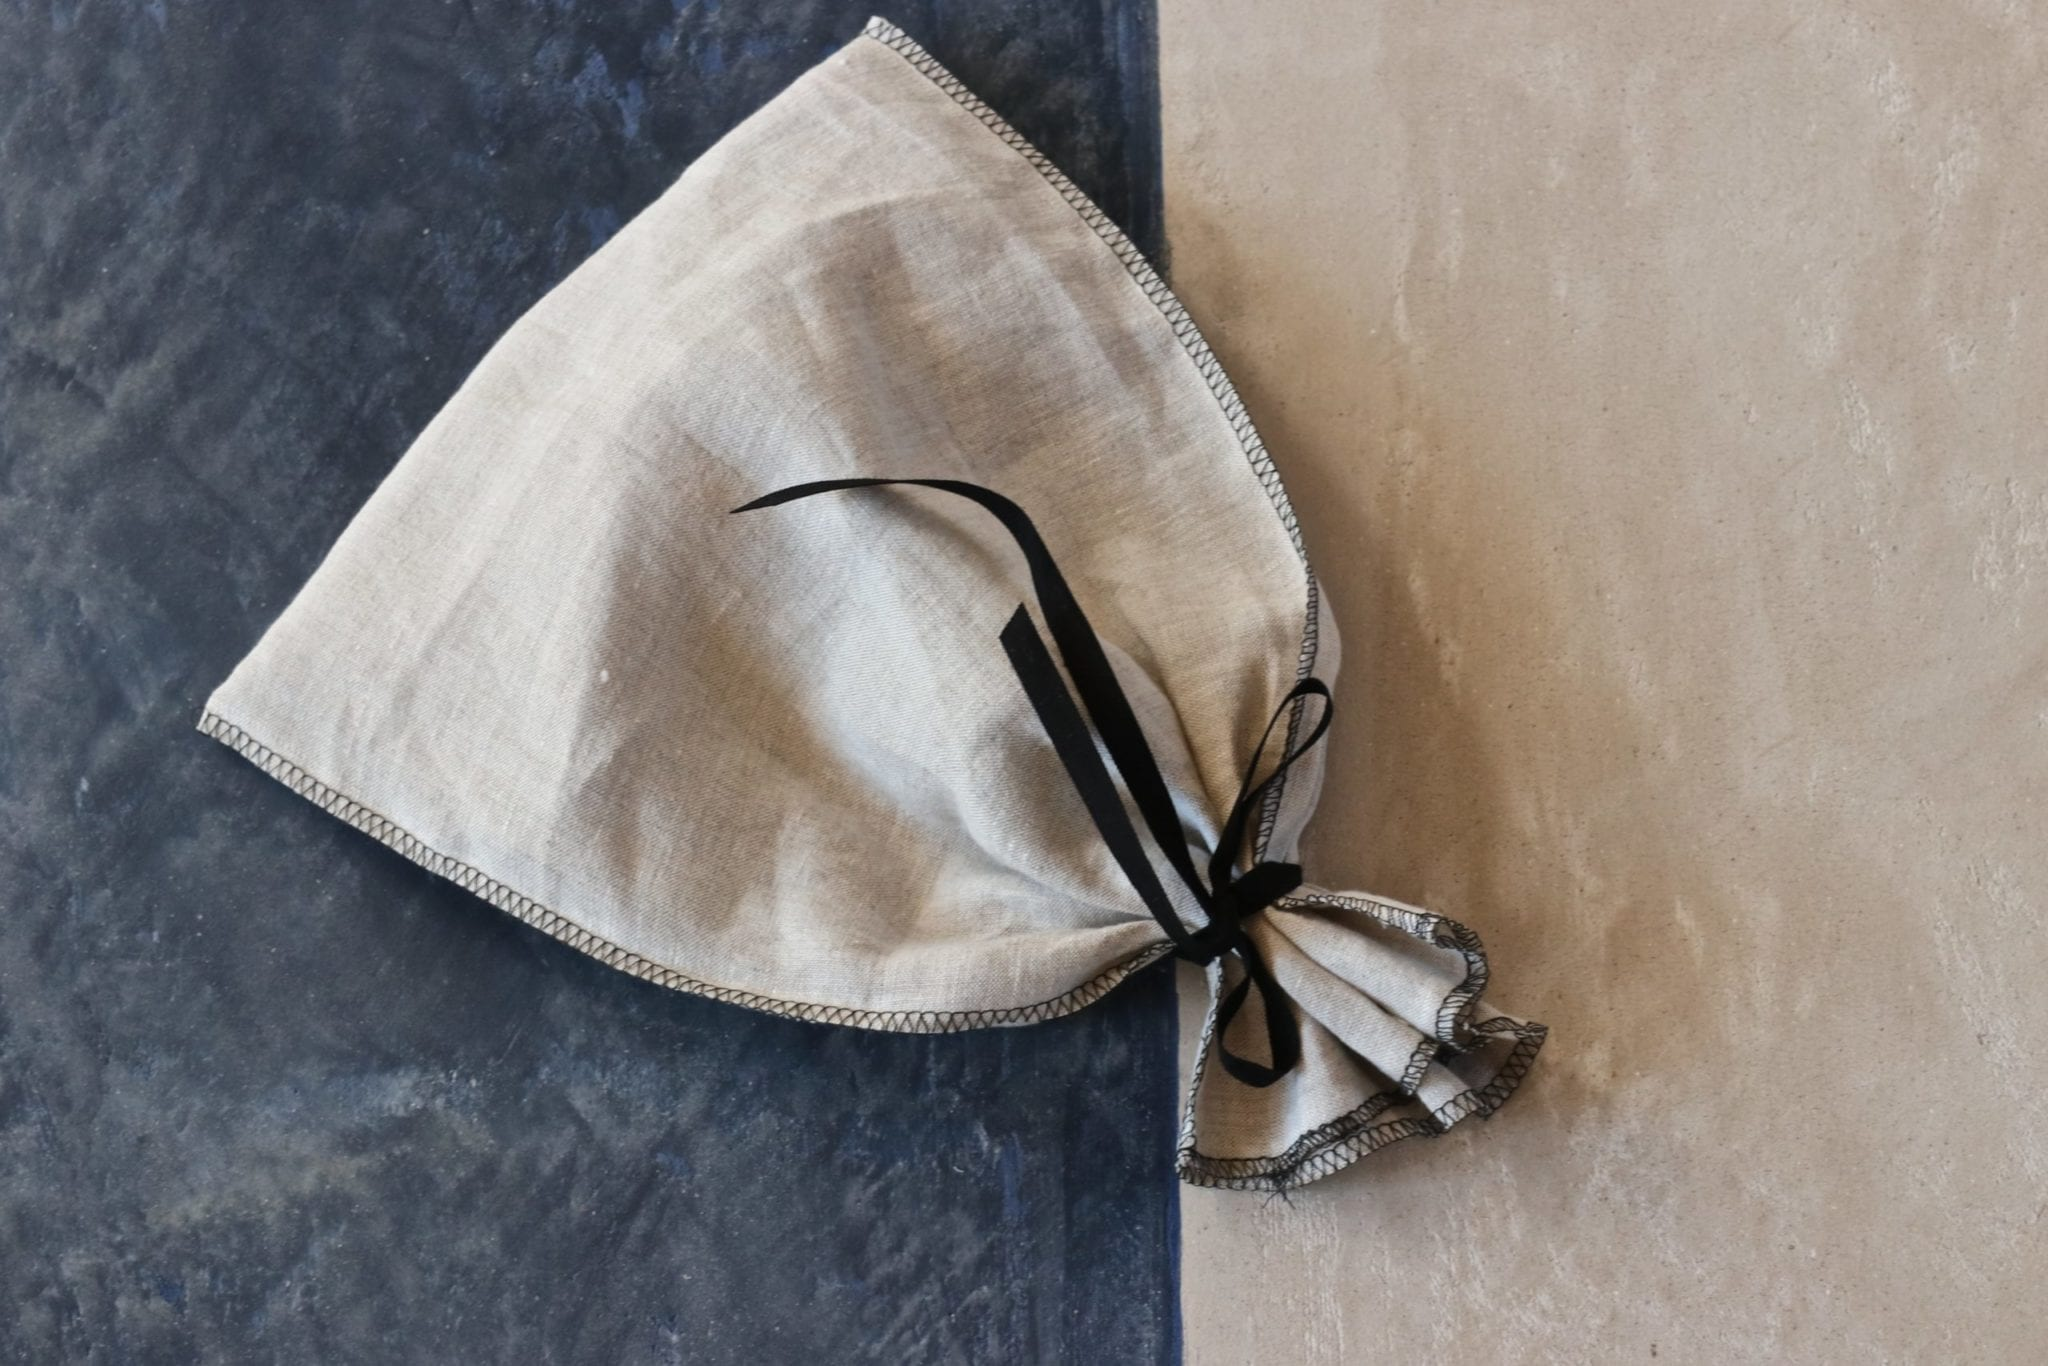 Cocktail Napkins - Once Milano